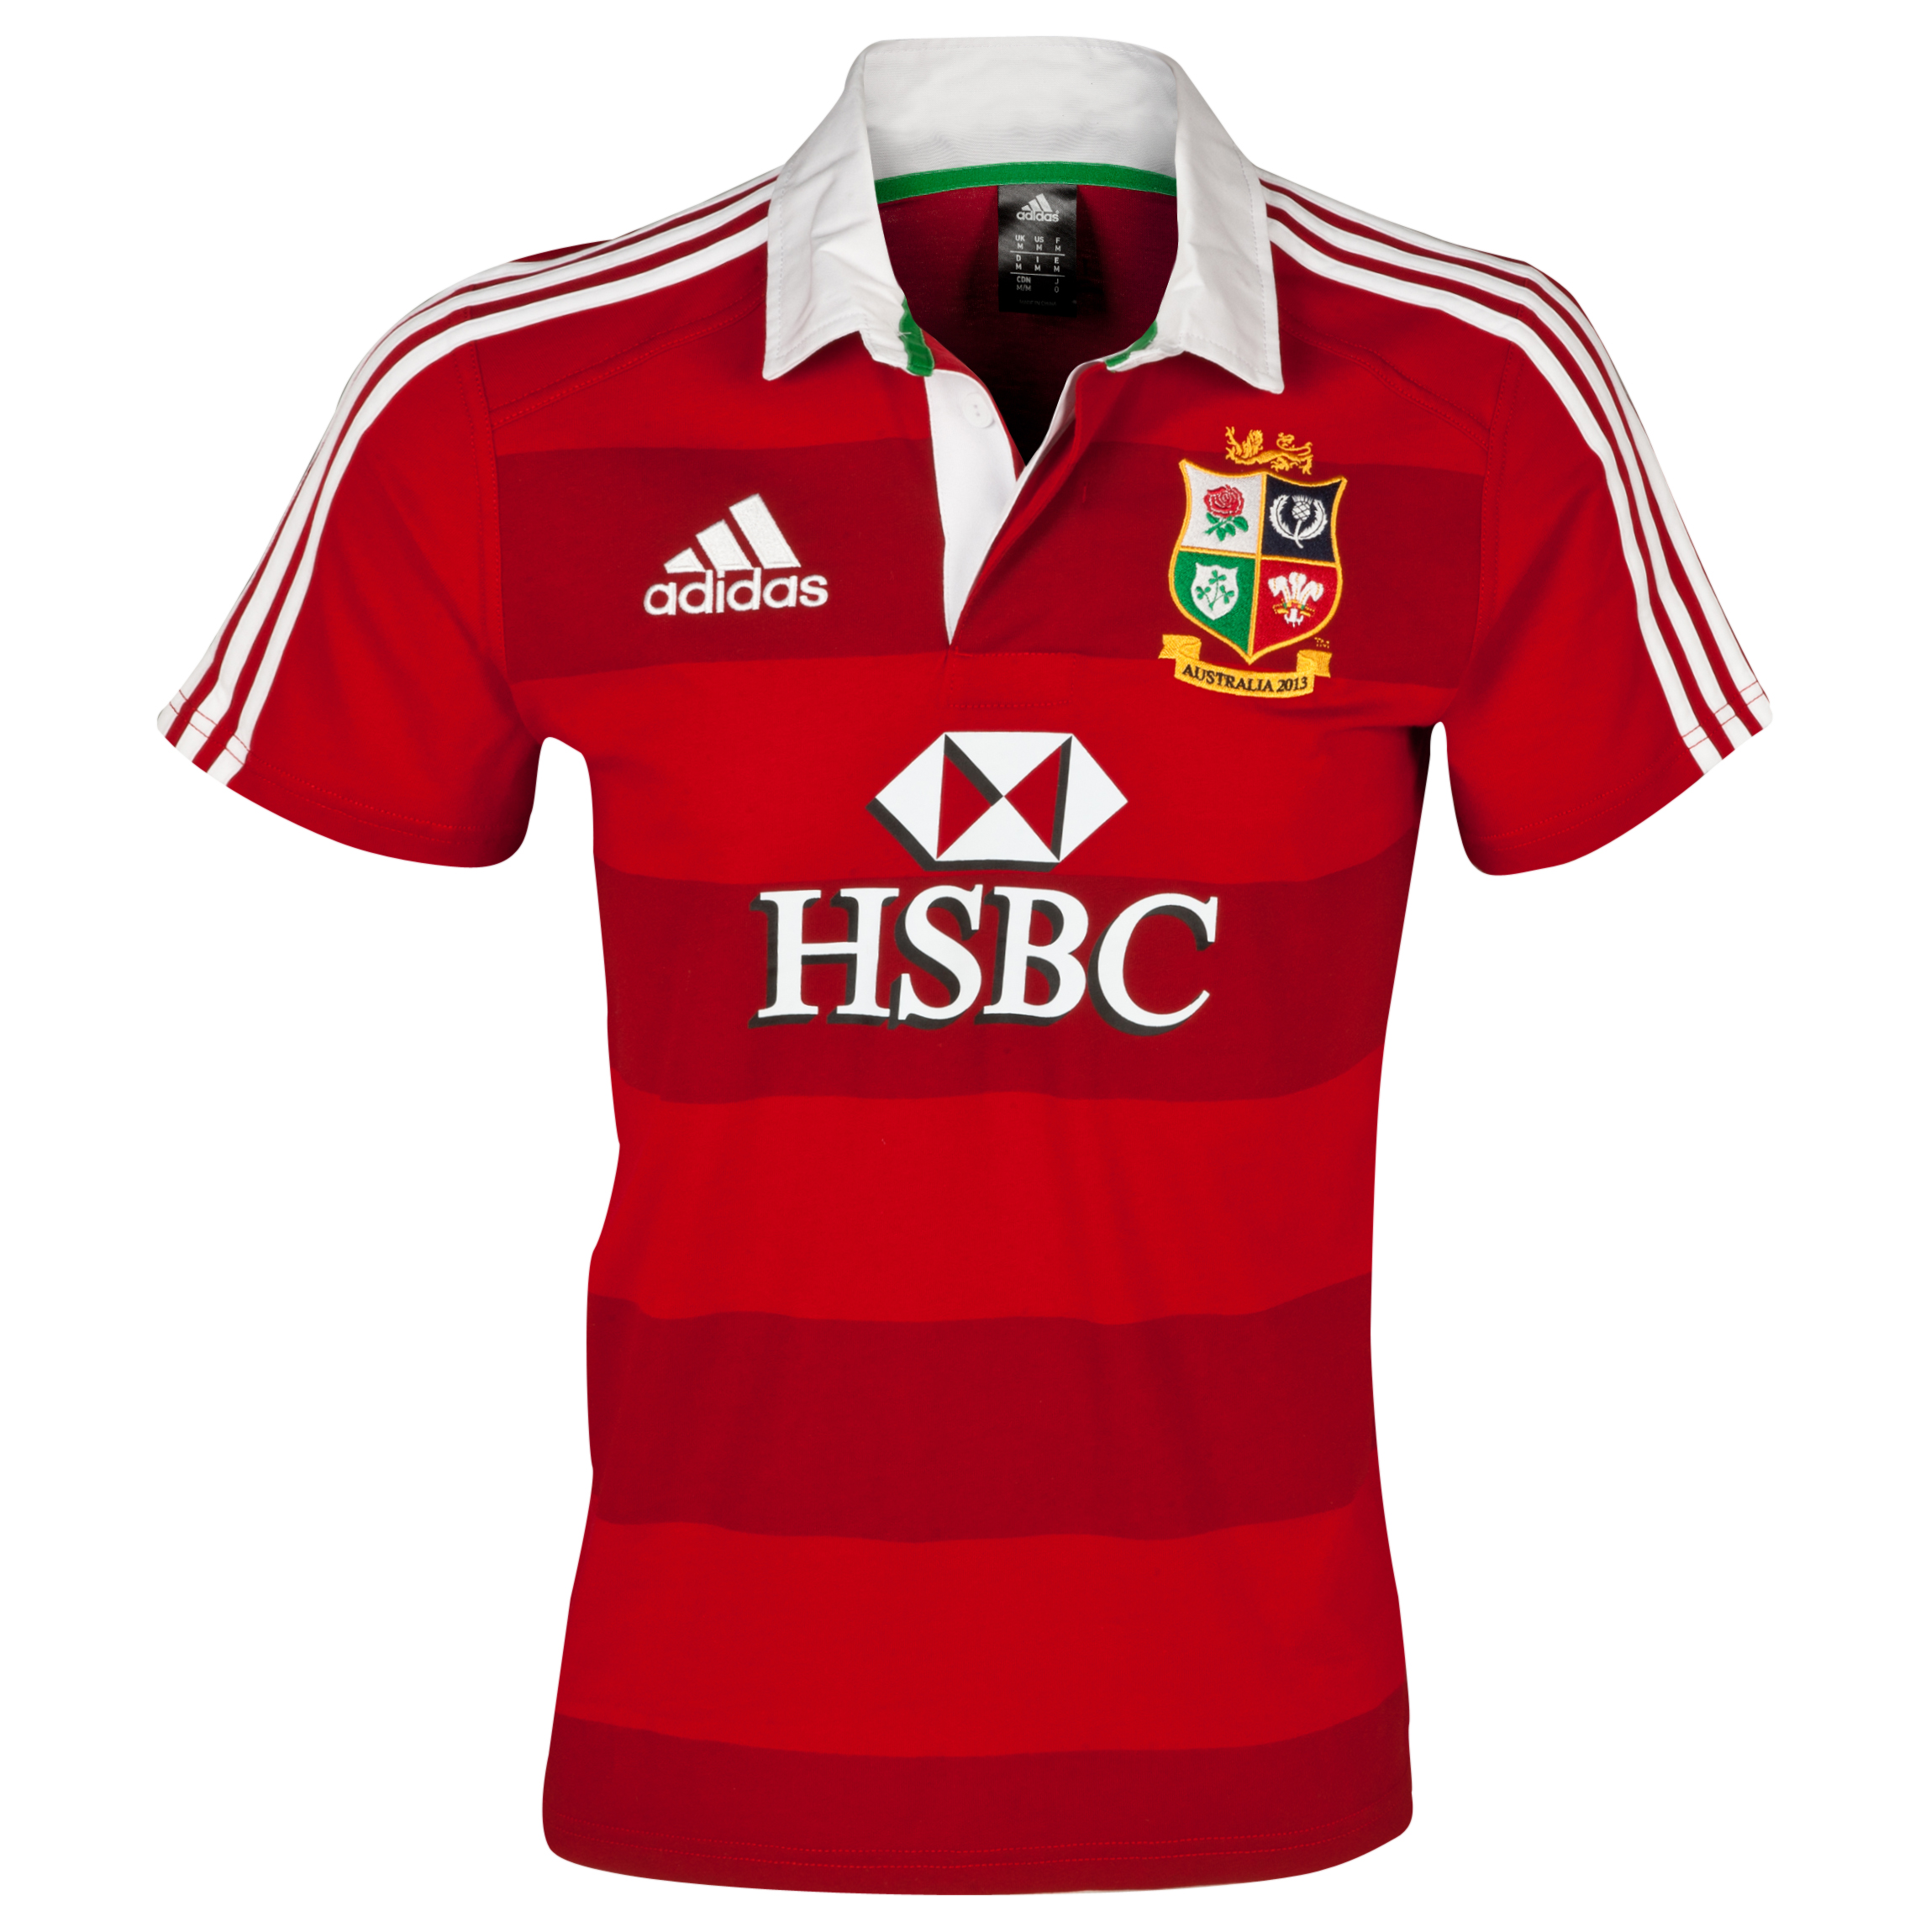 adidas British and Irish Lions Supporters Shirt - University Red/White